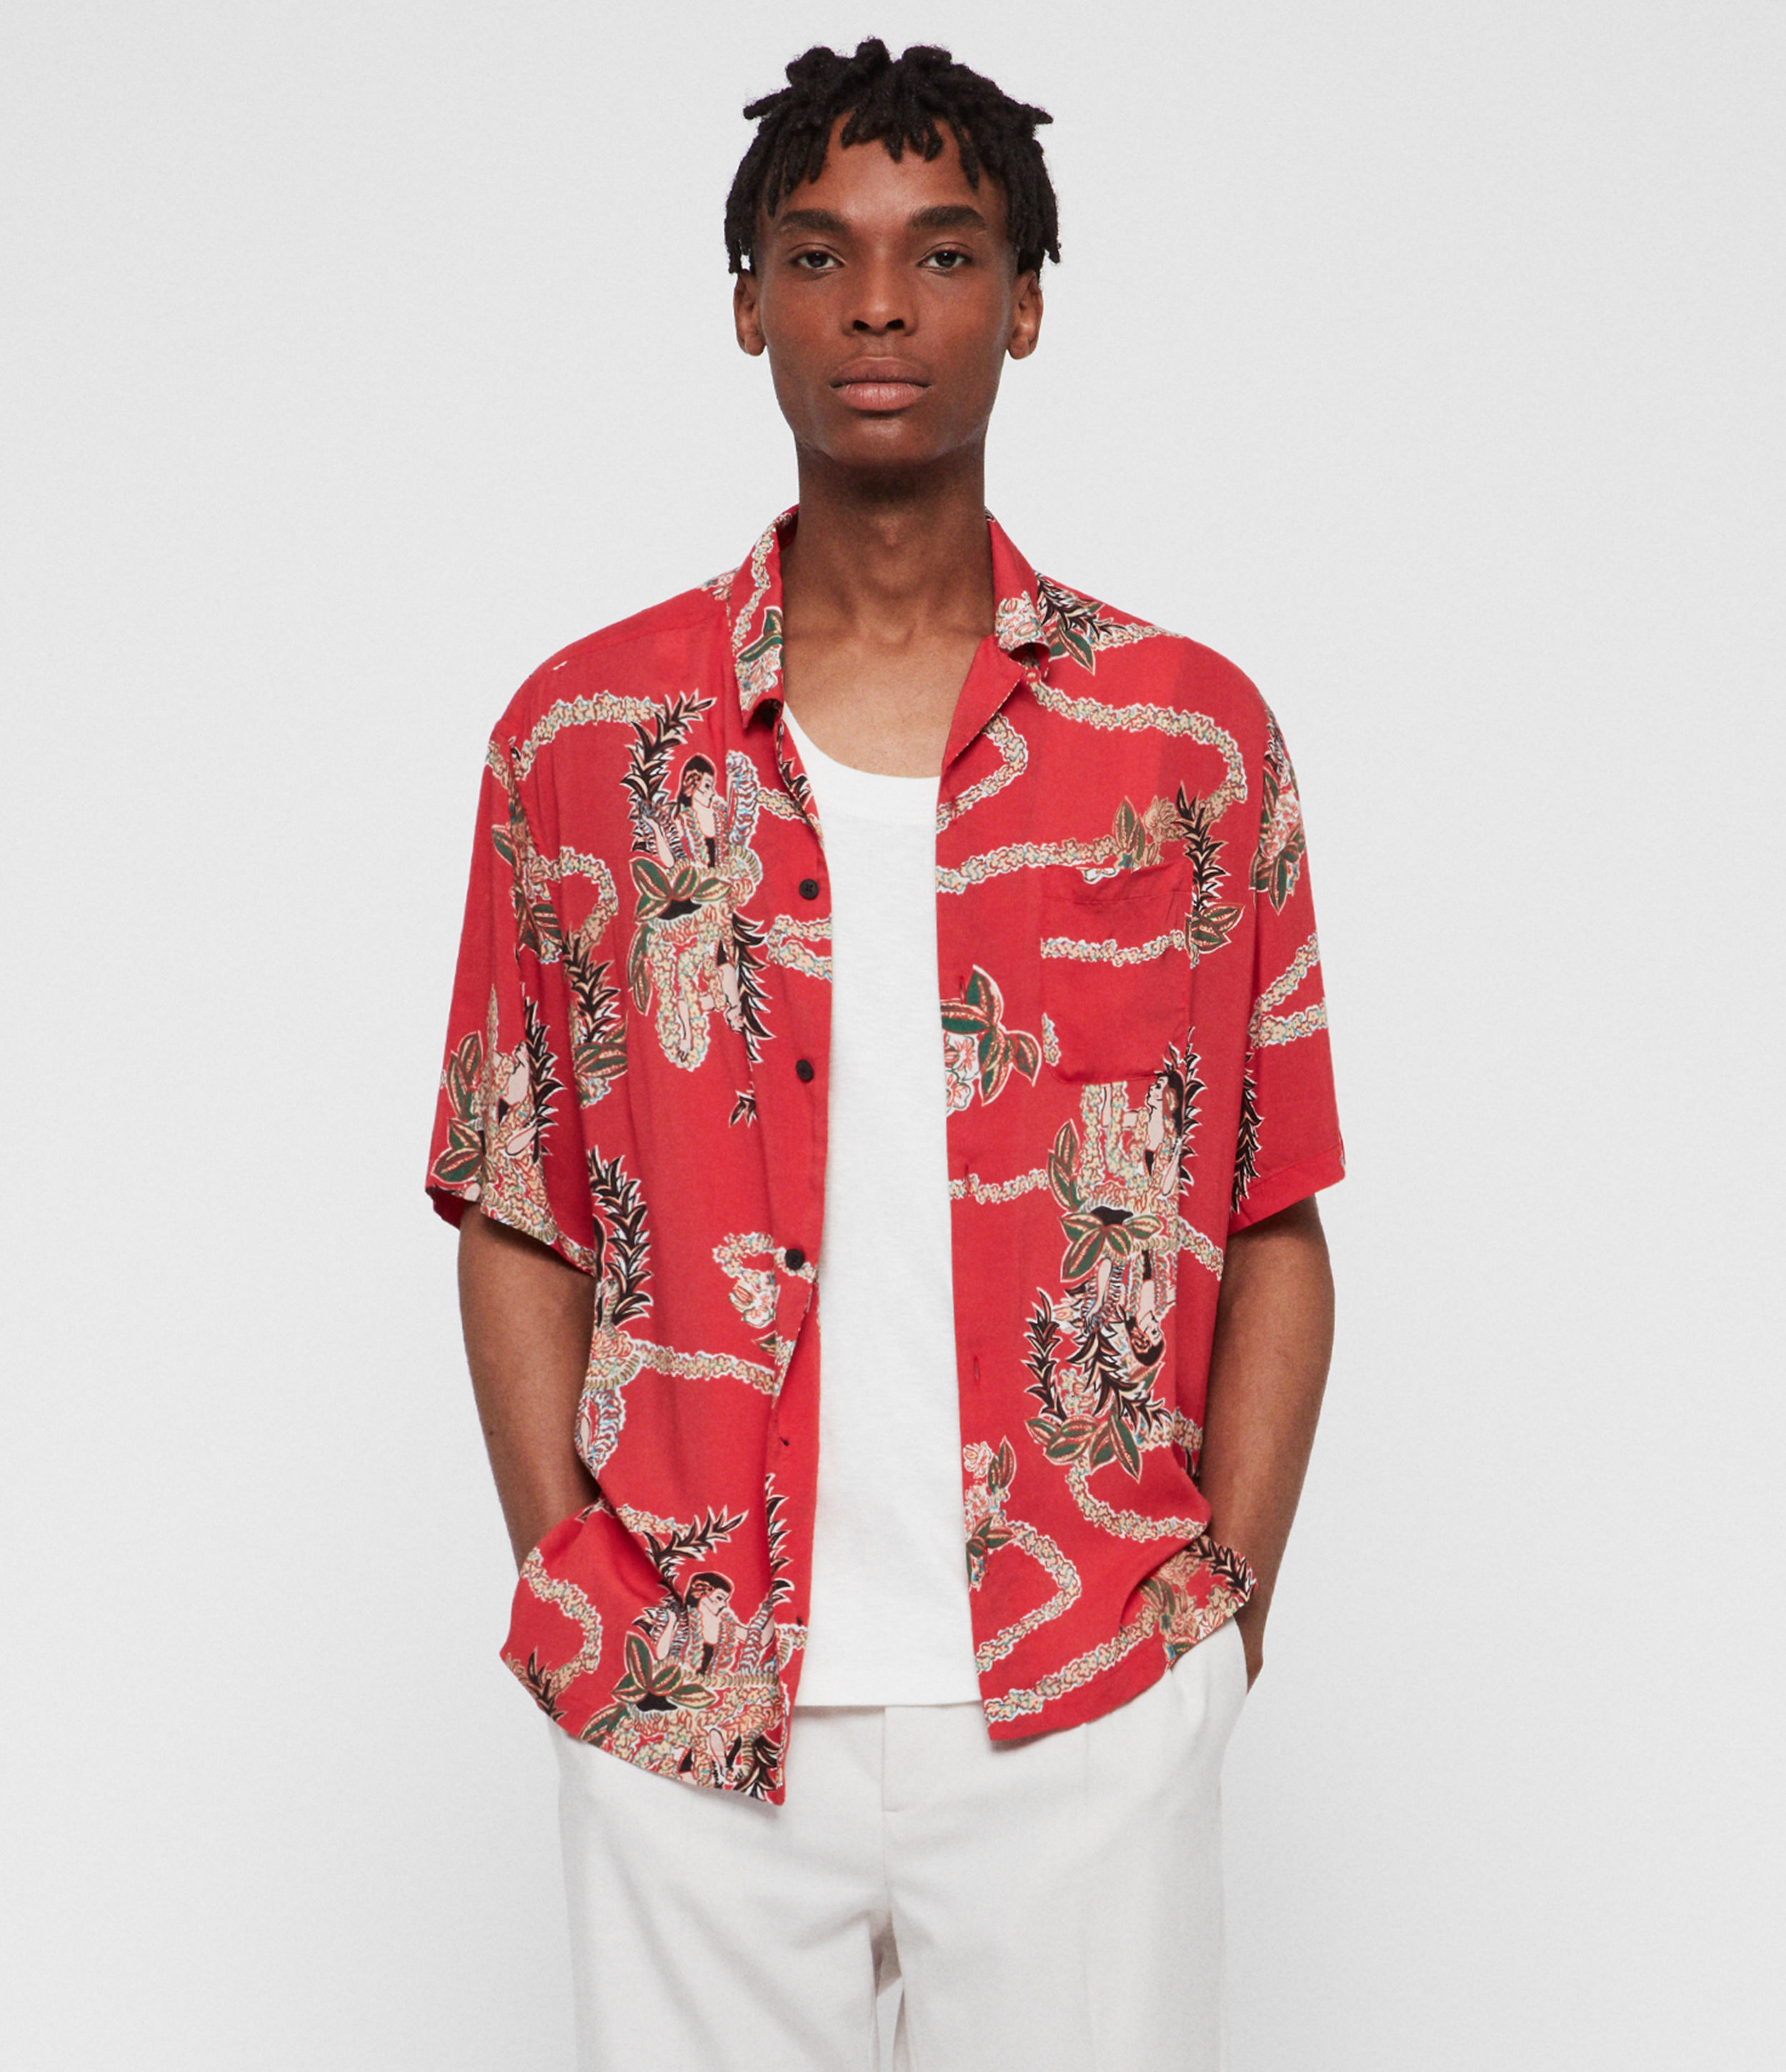 AllSaints Men's Relaxed Fit Makalika Shirt, Red, Green and White, Size: S